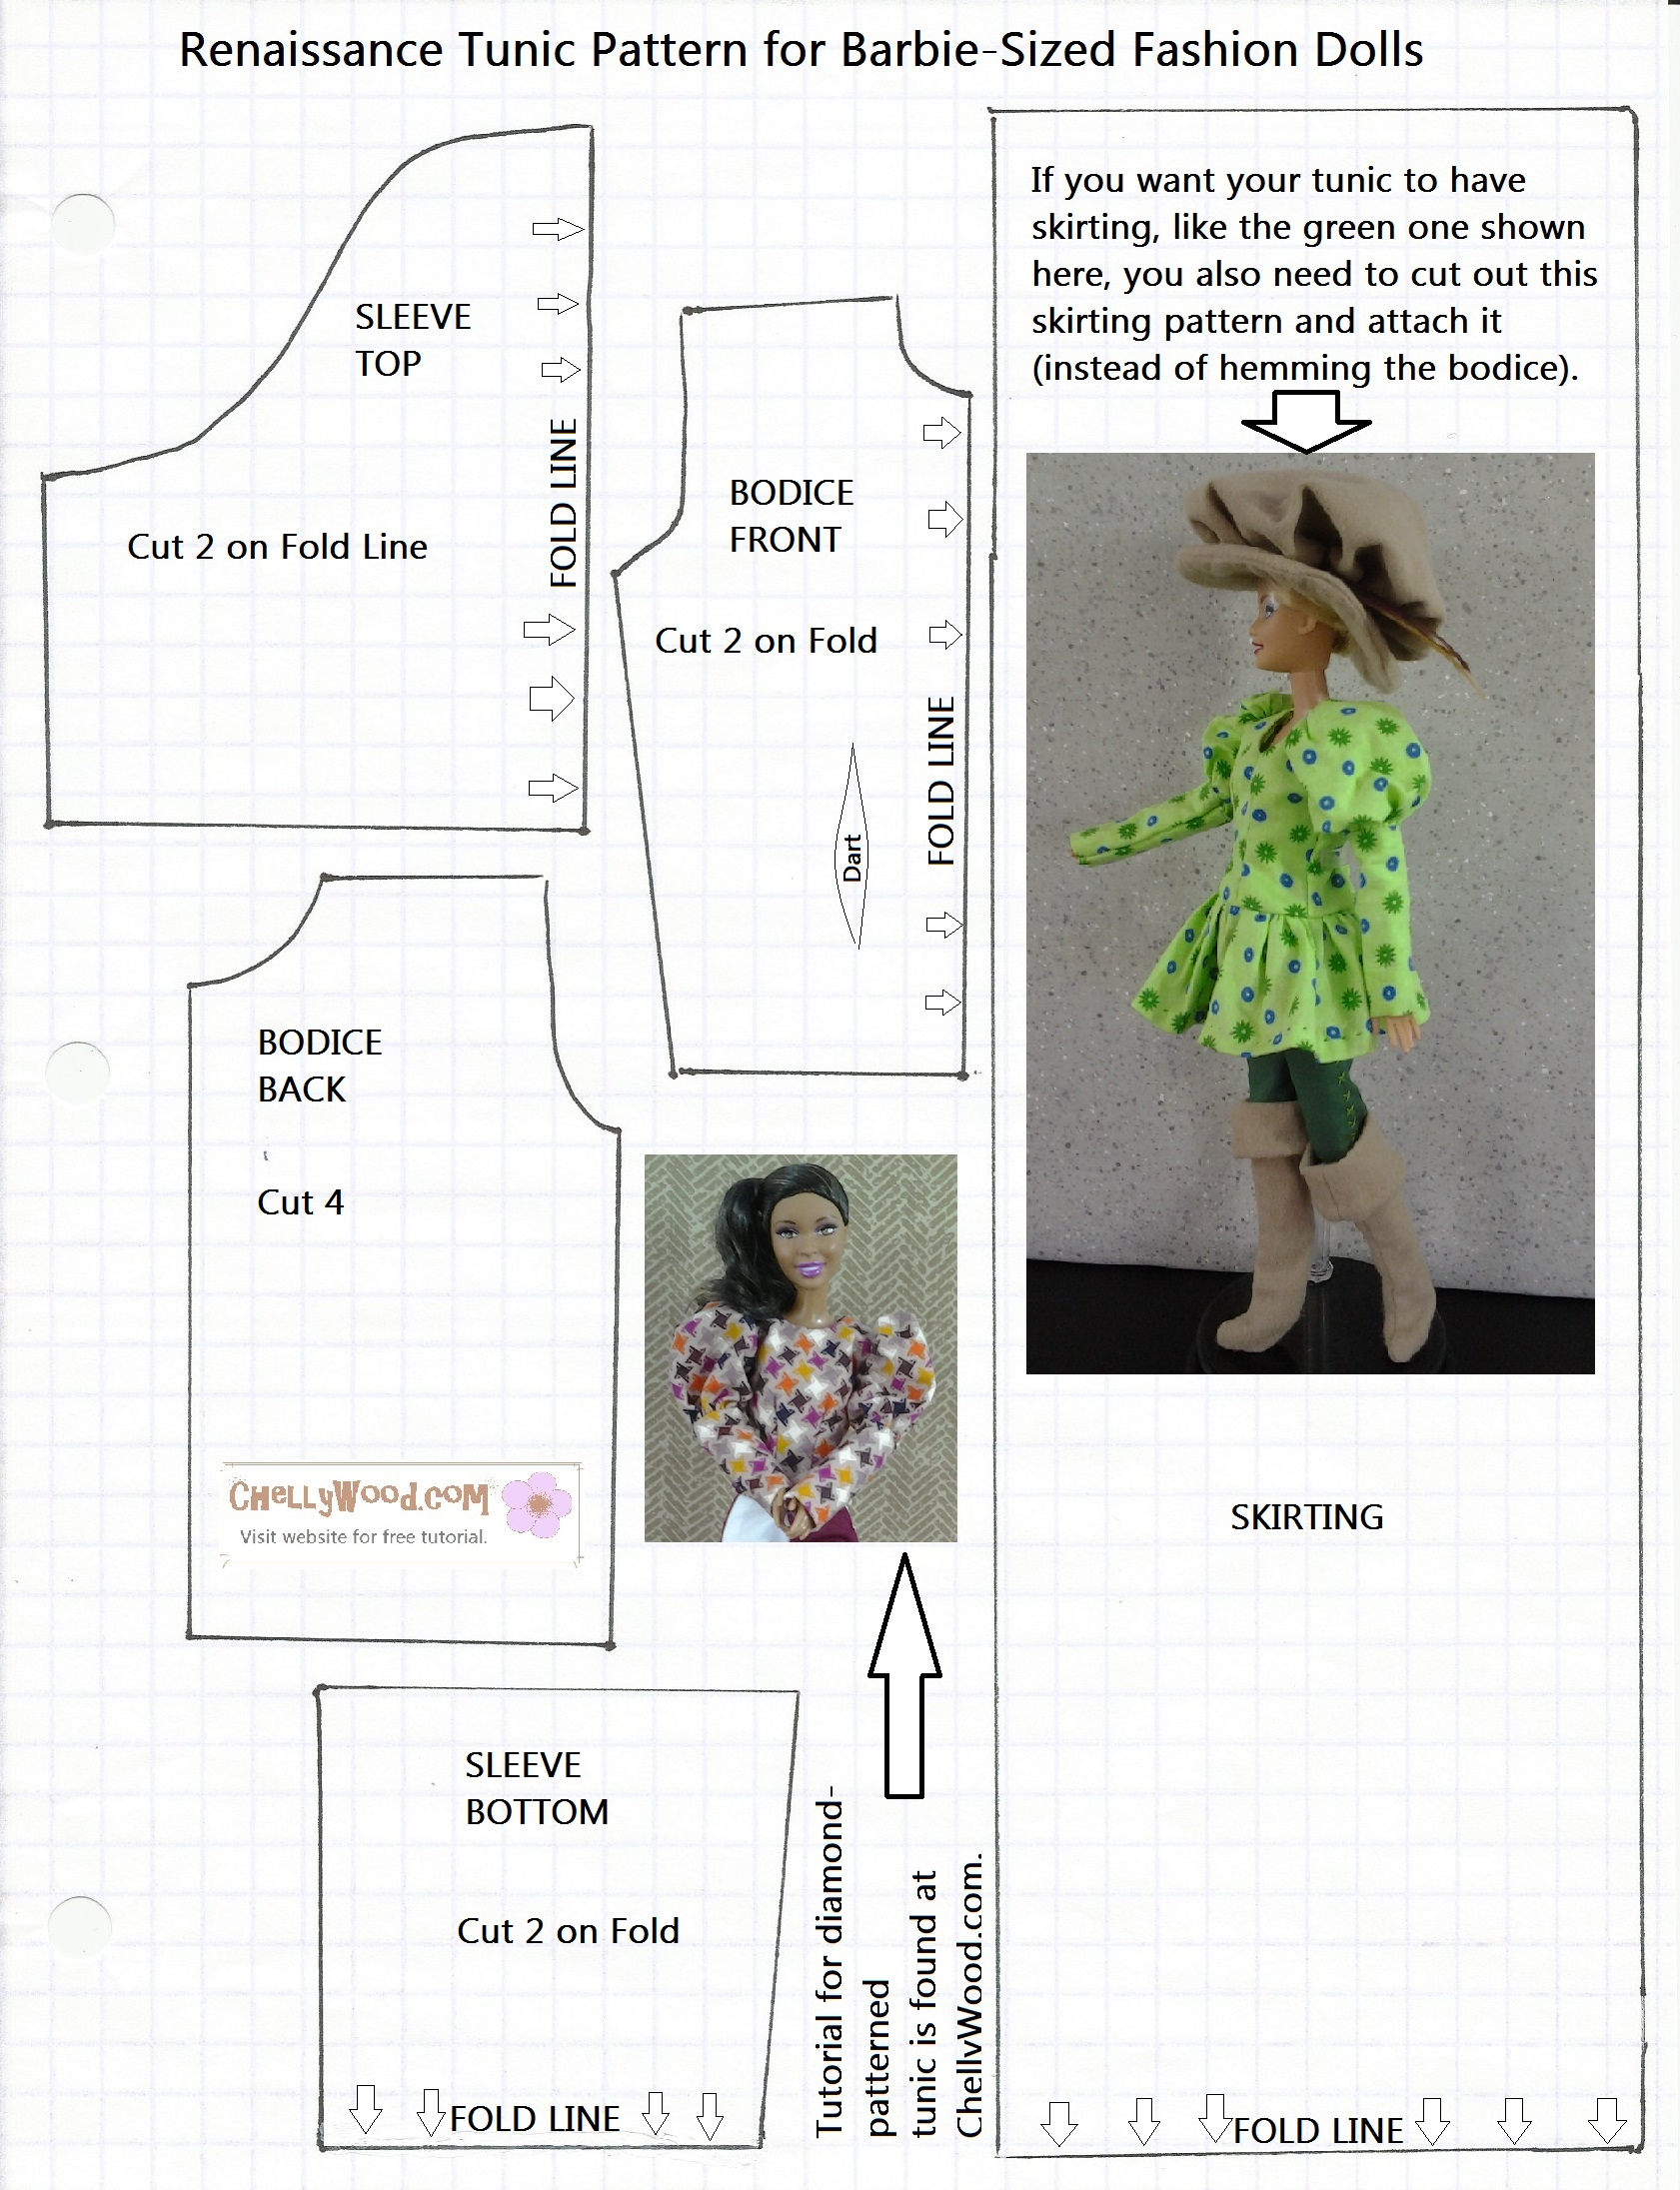 image relating to Barbie Doll Clothes Patterns Free Printable referred to as Totally free Printable Barbie Doll Clothing Behavior Cywood